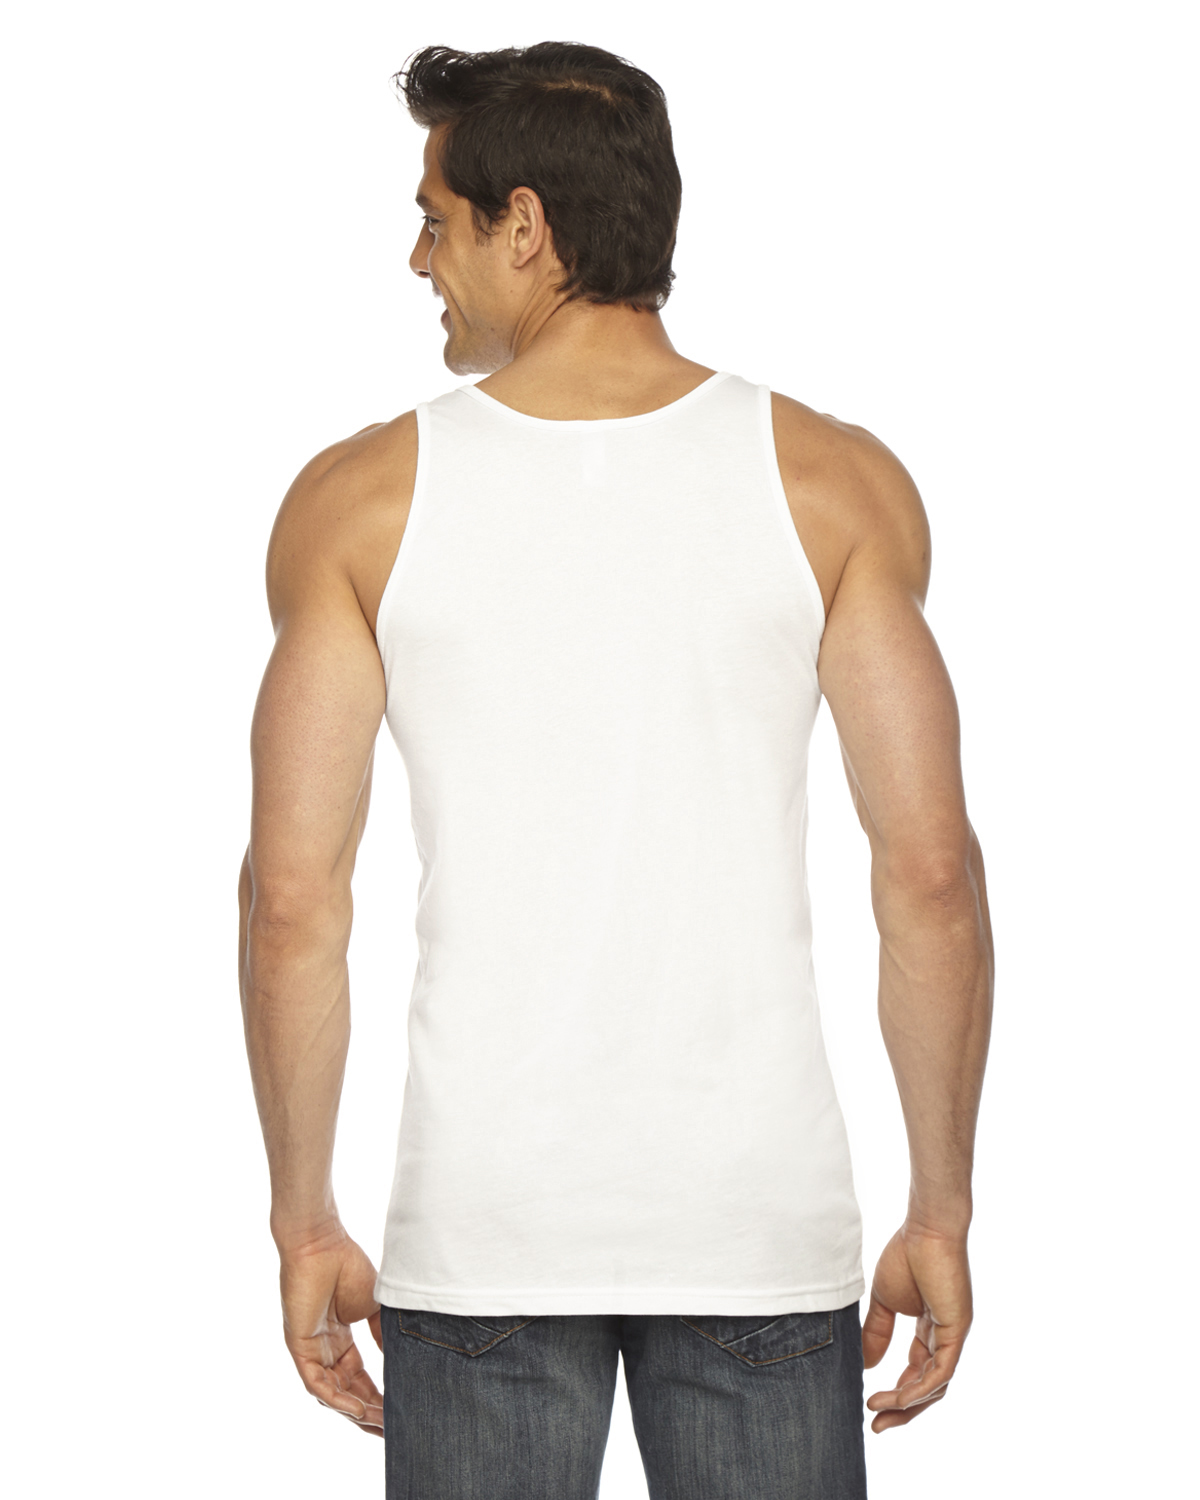 American Apparel Unisex Poly-Cotton Tank BB408 Made In US